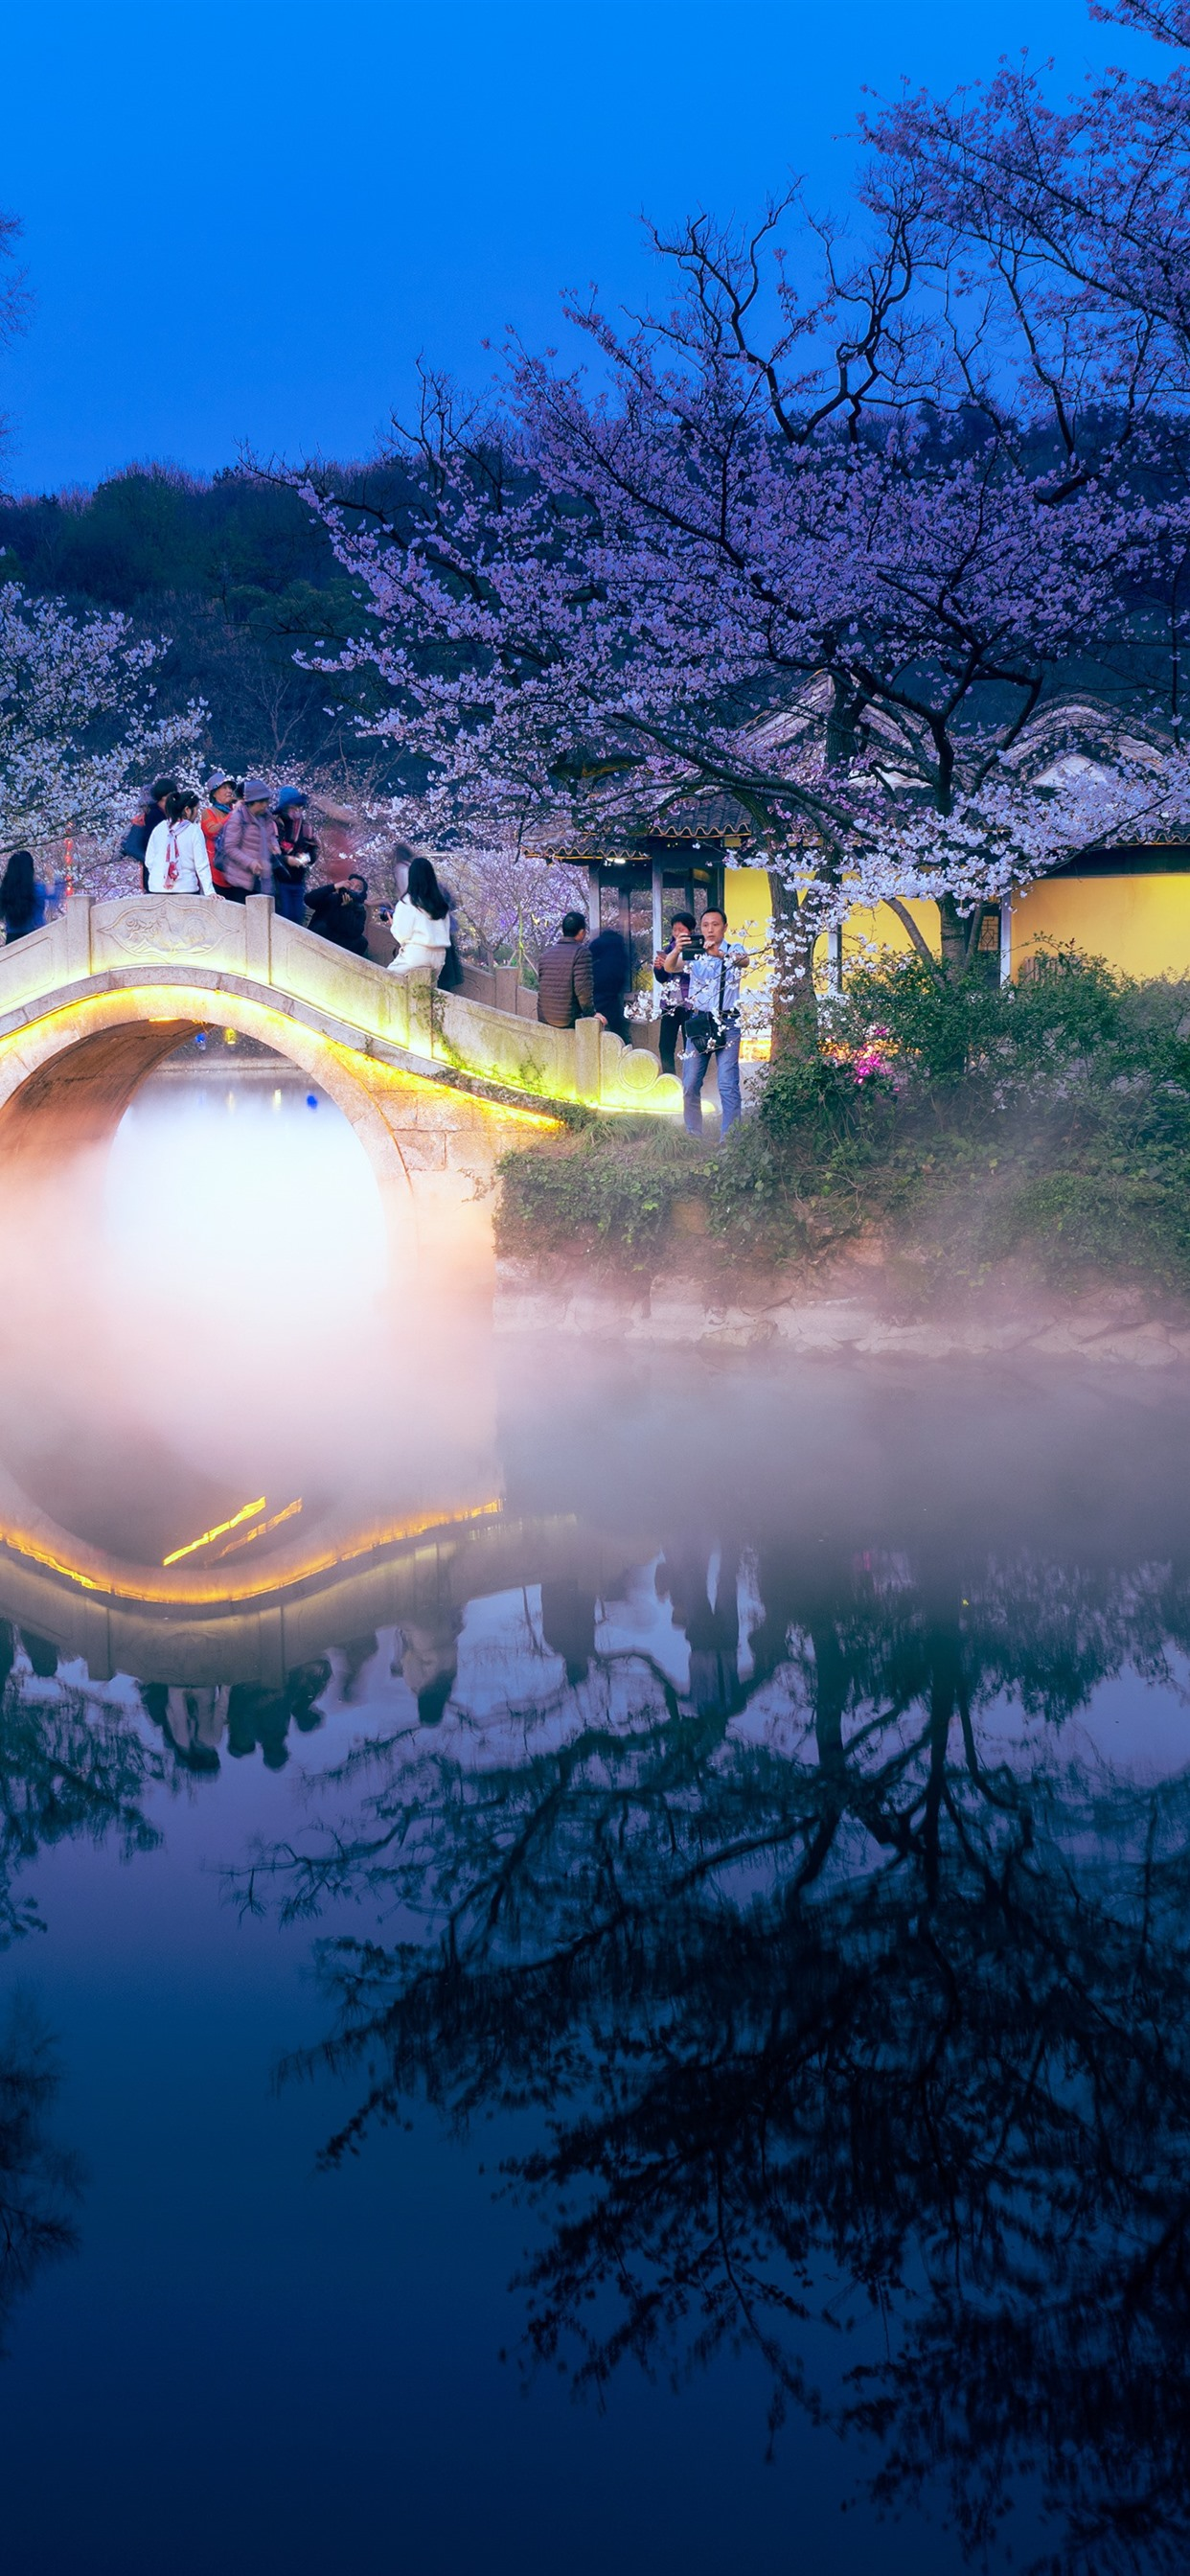 Travel China Night Bridge Sakura Lake Fog 1242x2688